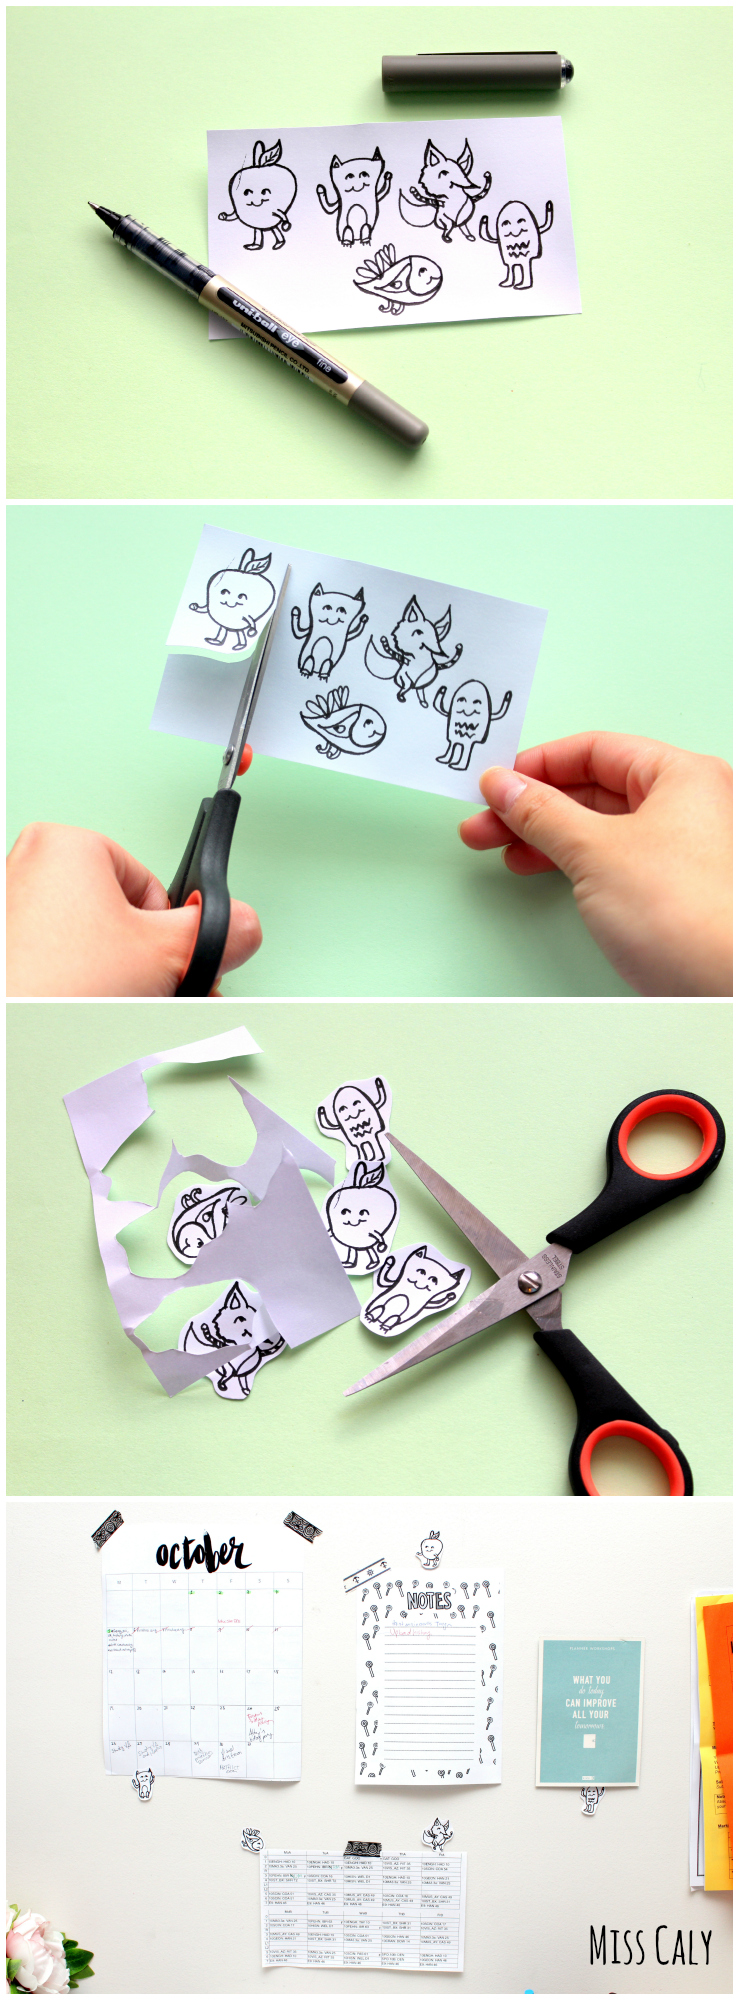 Adorable Printable Doodle Friends! They are here to brighten your day and are great for decorating your workspace